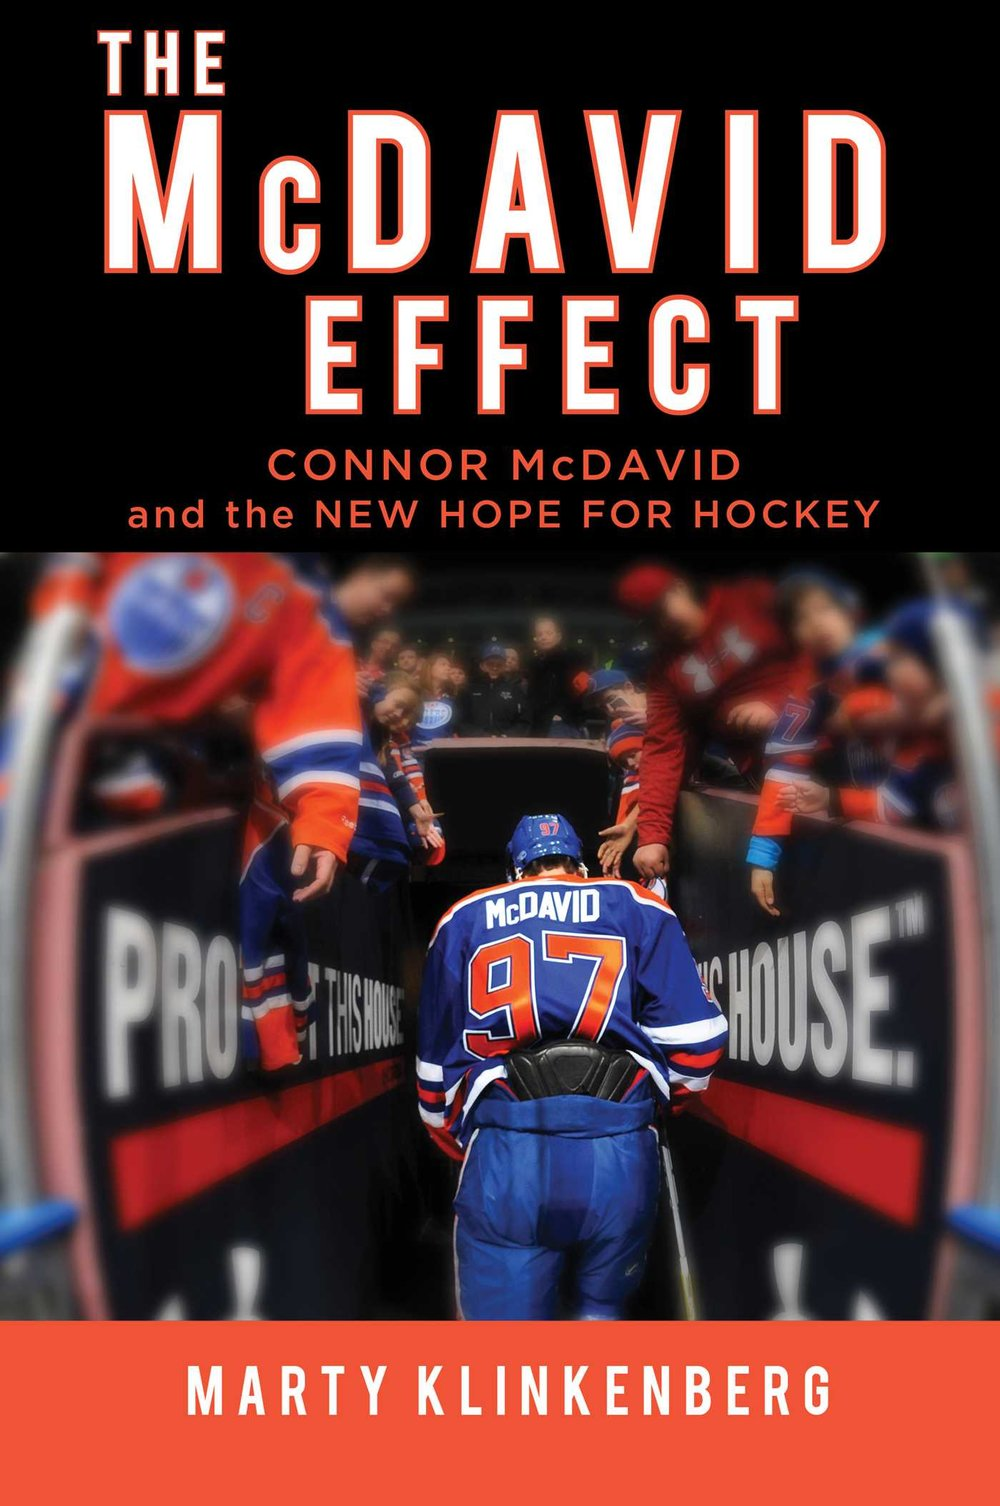 The McDavid Effect by Marty Klinkenberg